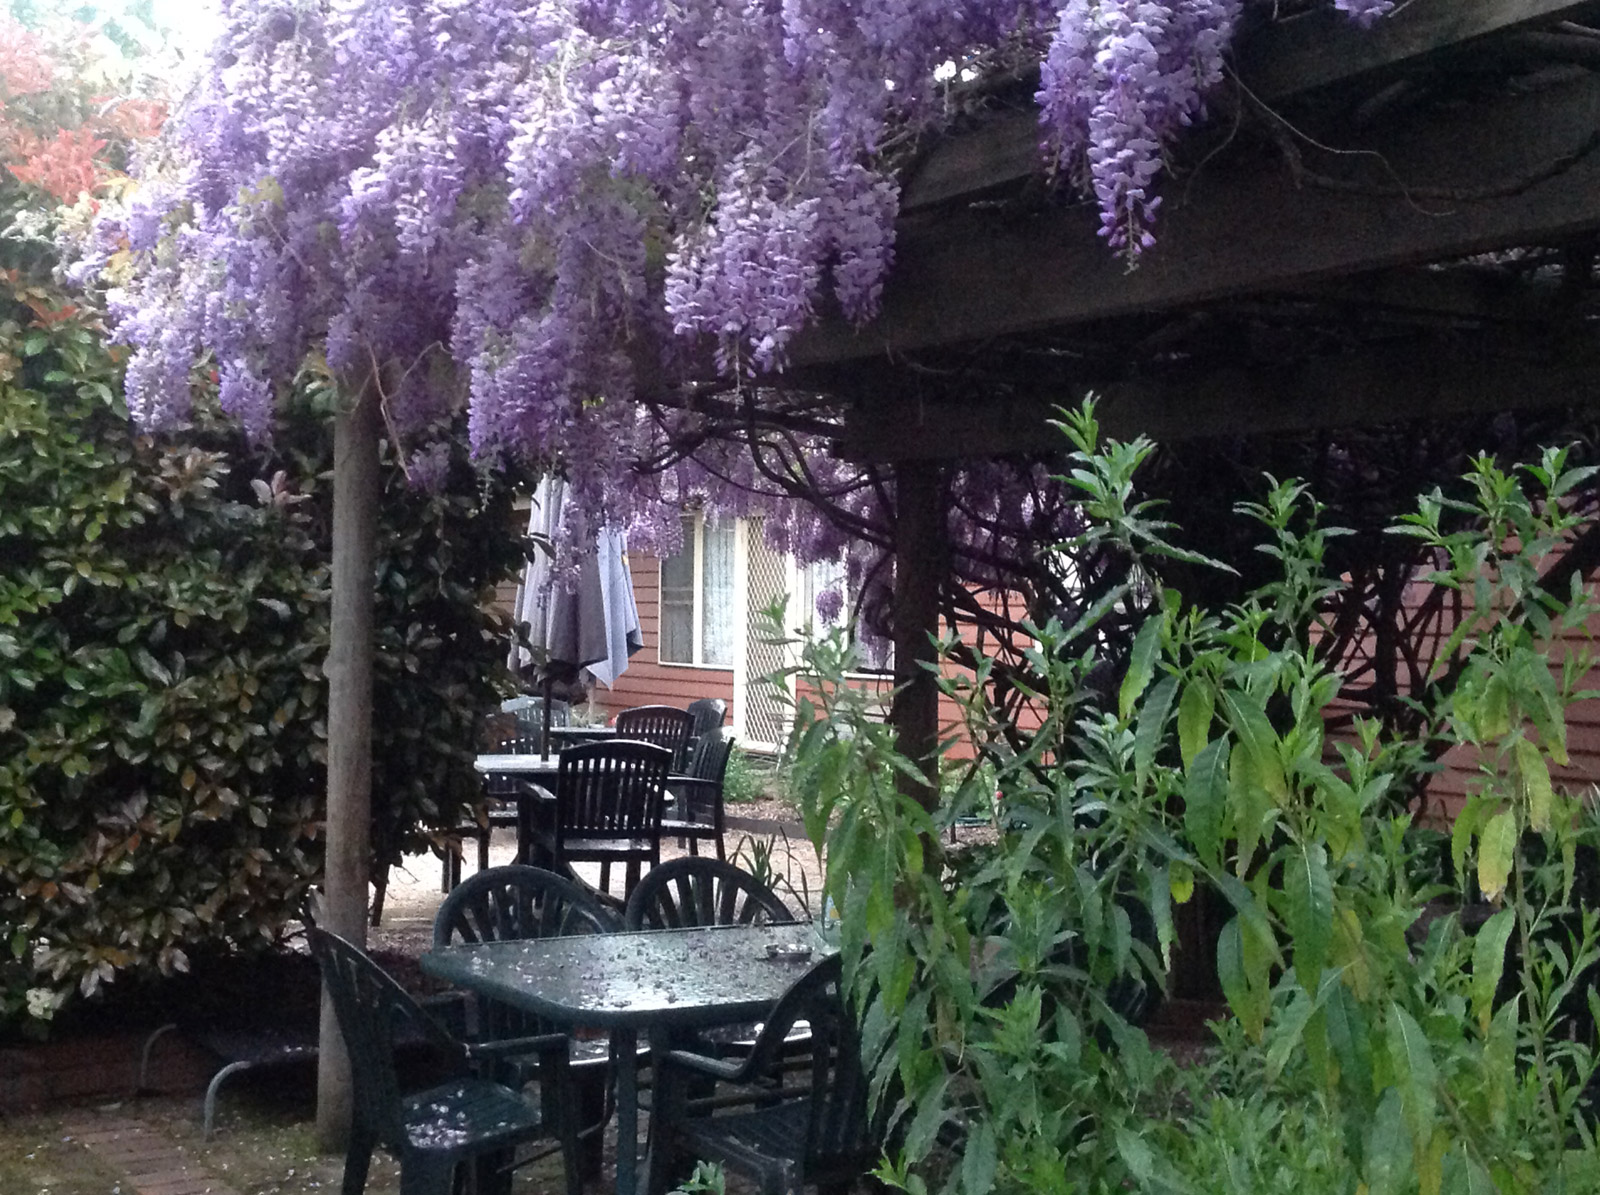 Our magnificent wisteria